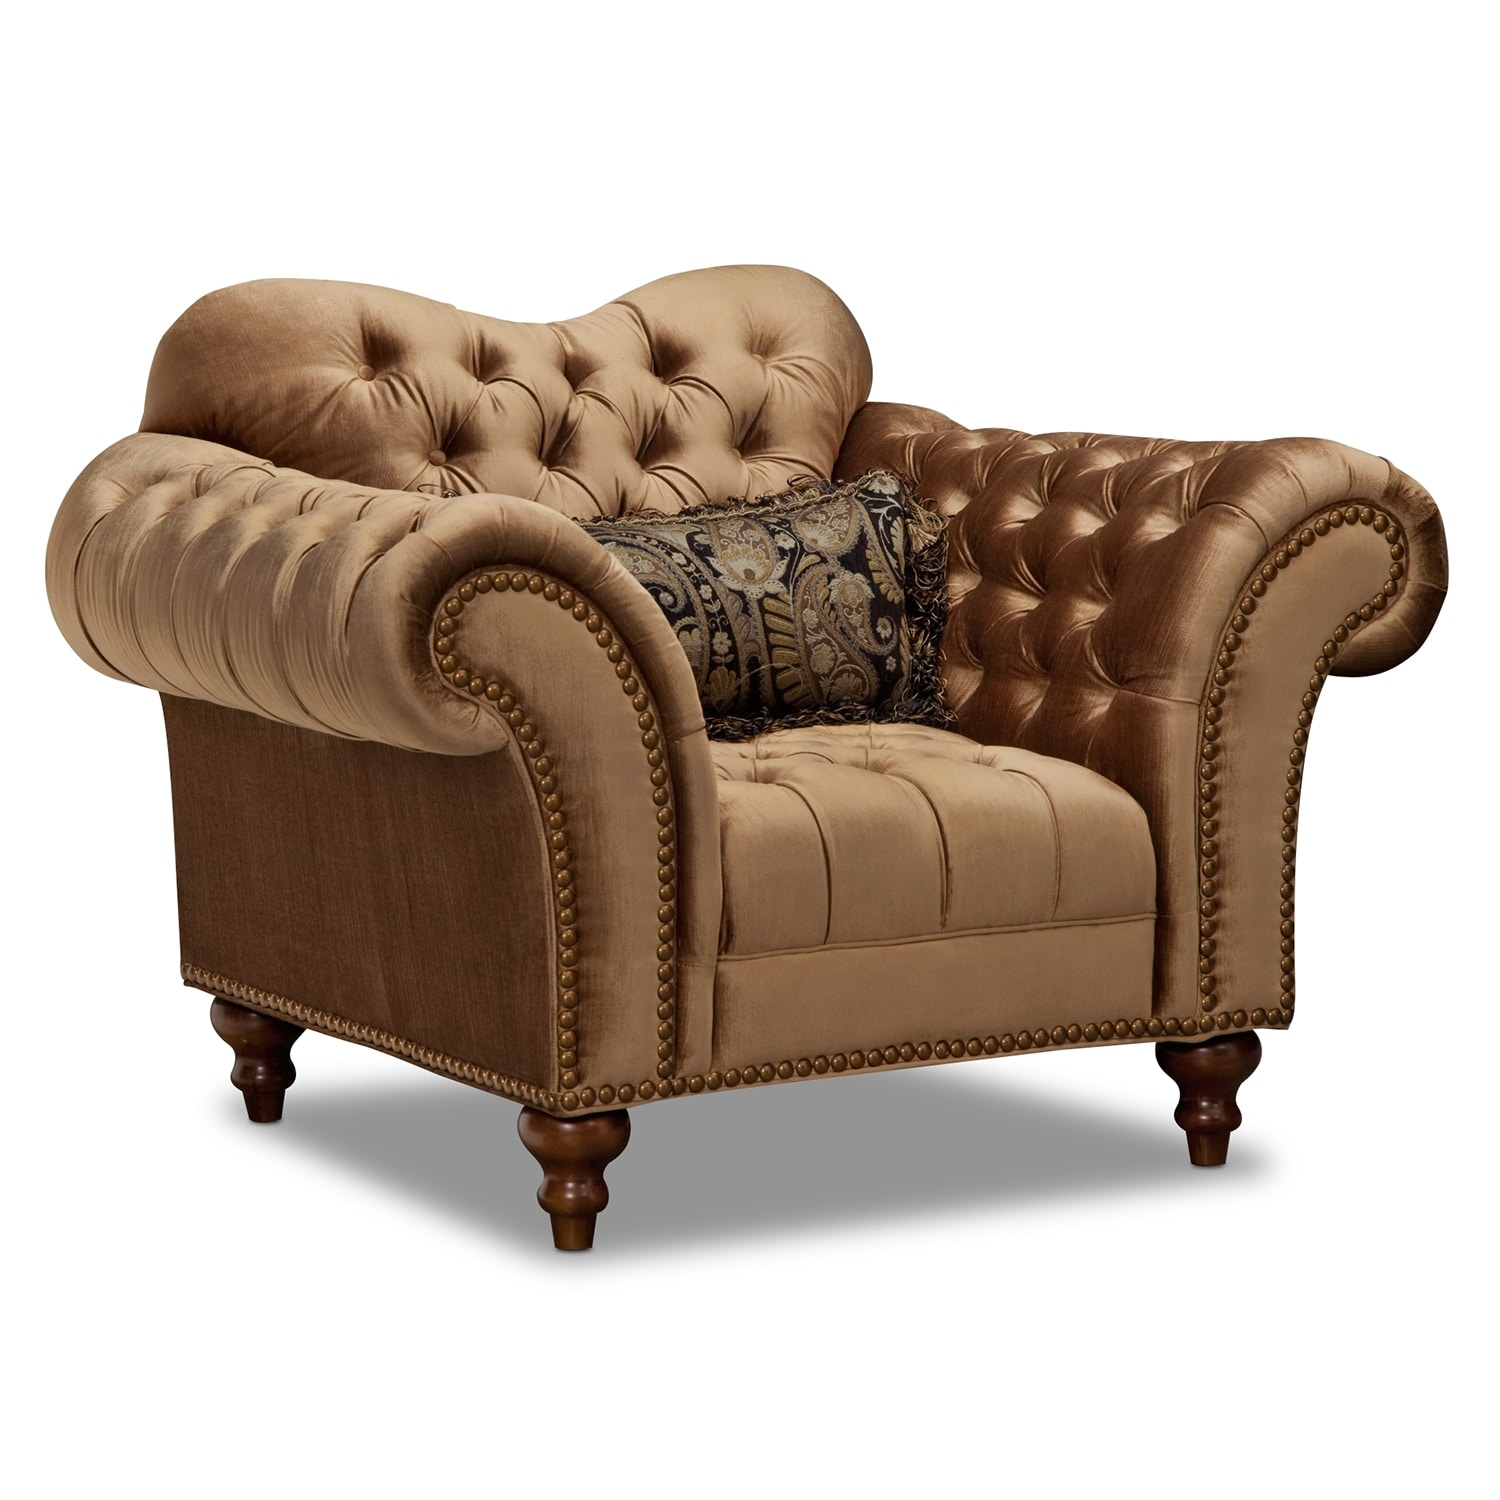 Brittney chair bronze american signature furniture for Signature furniture